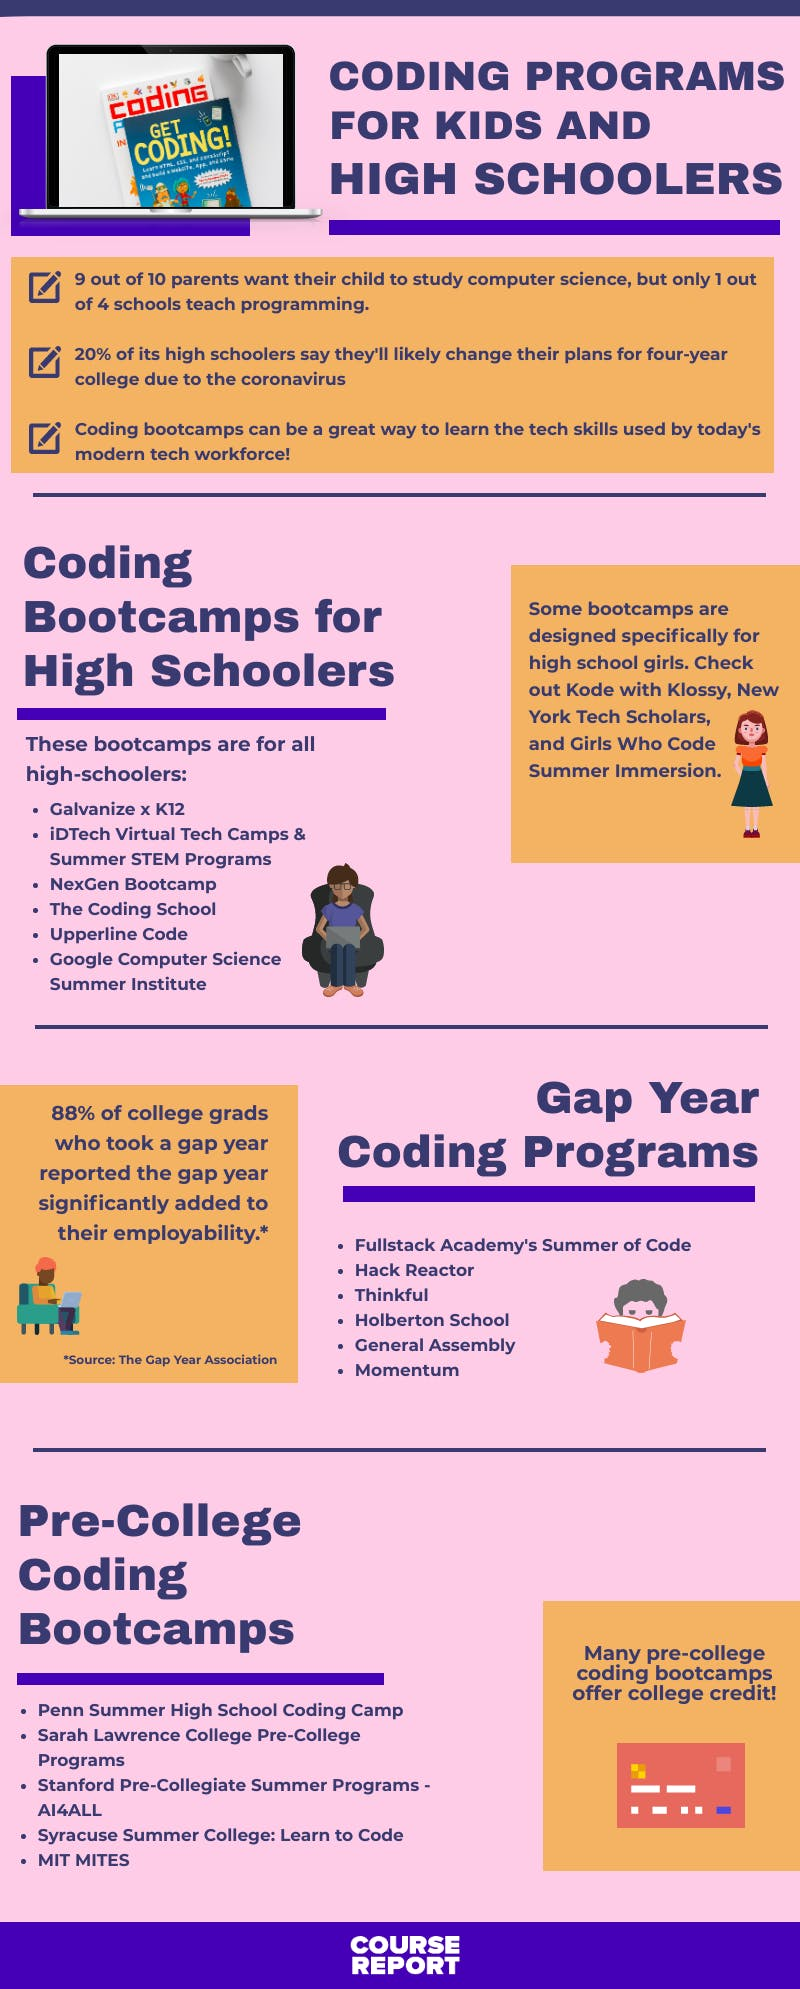 Coding bootcamps for high schoolers